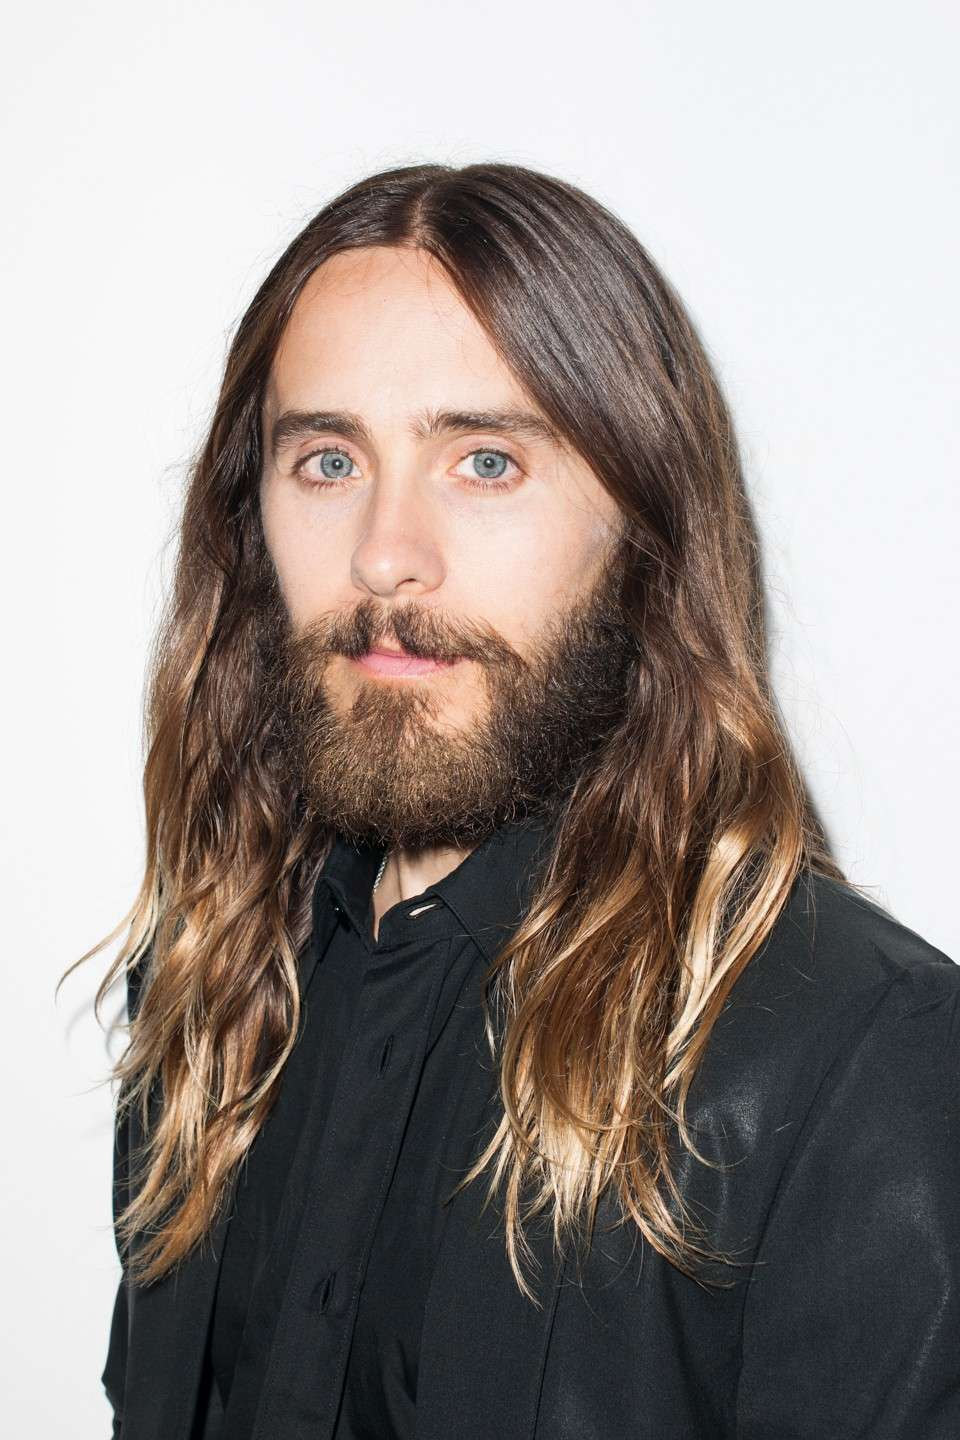 [PHOTOSHOOT] Jared Leto by Terry Richardson - Page 32 Tumblr12